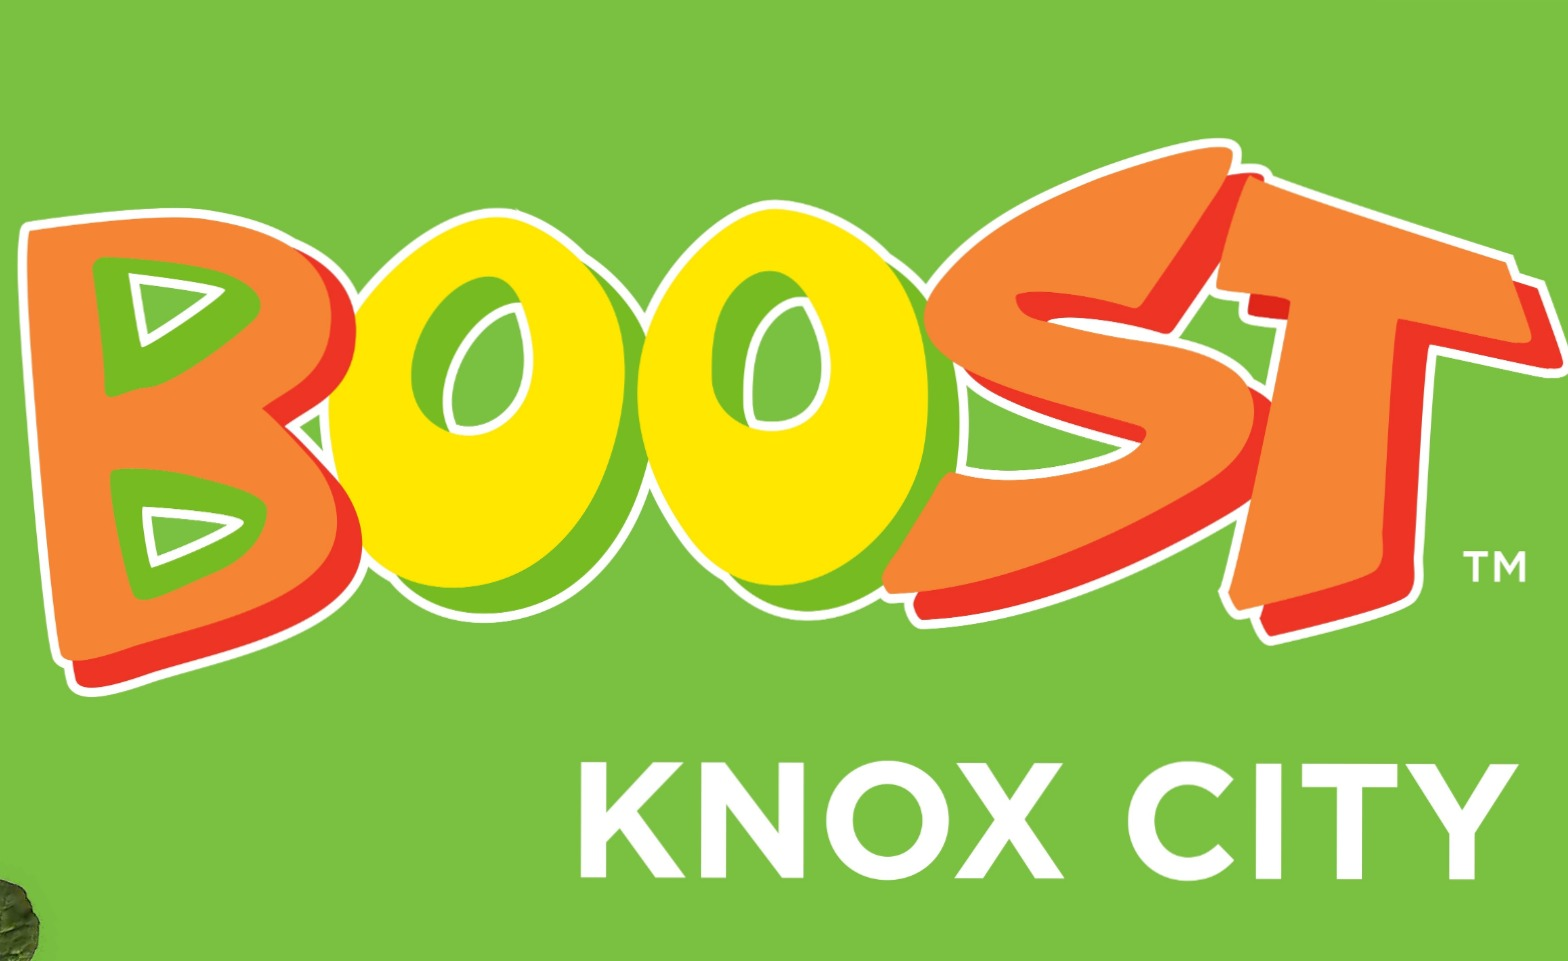 boost%20logo_edited